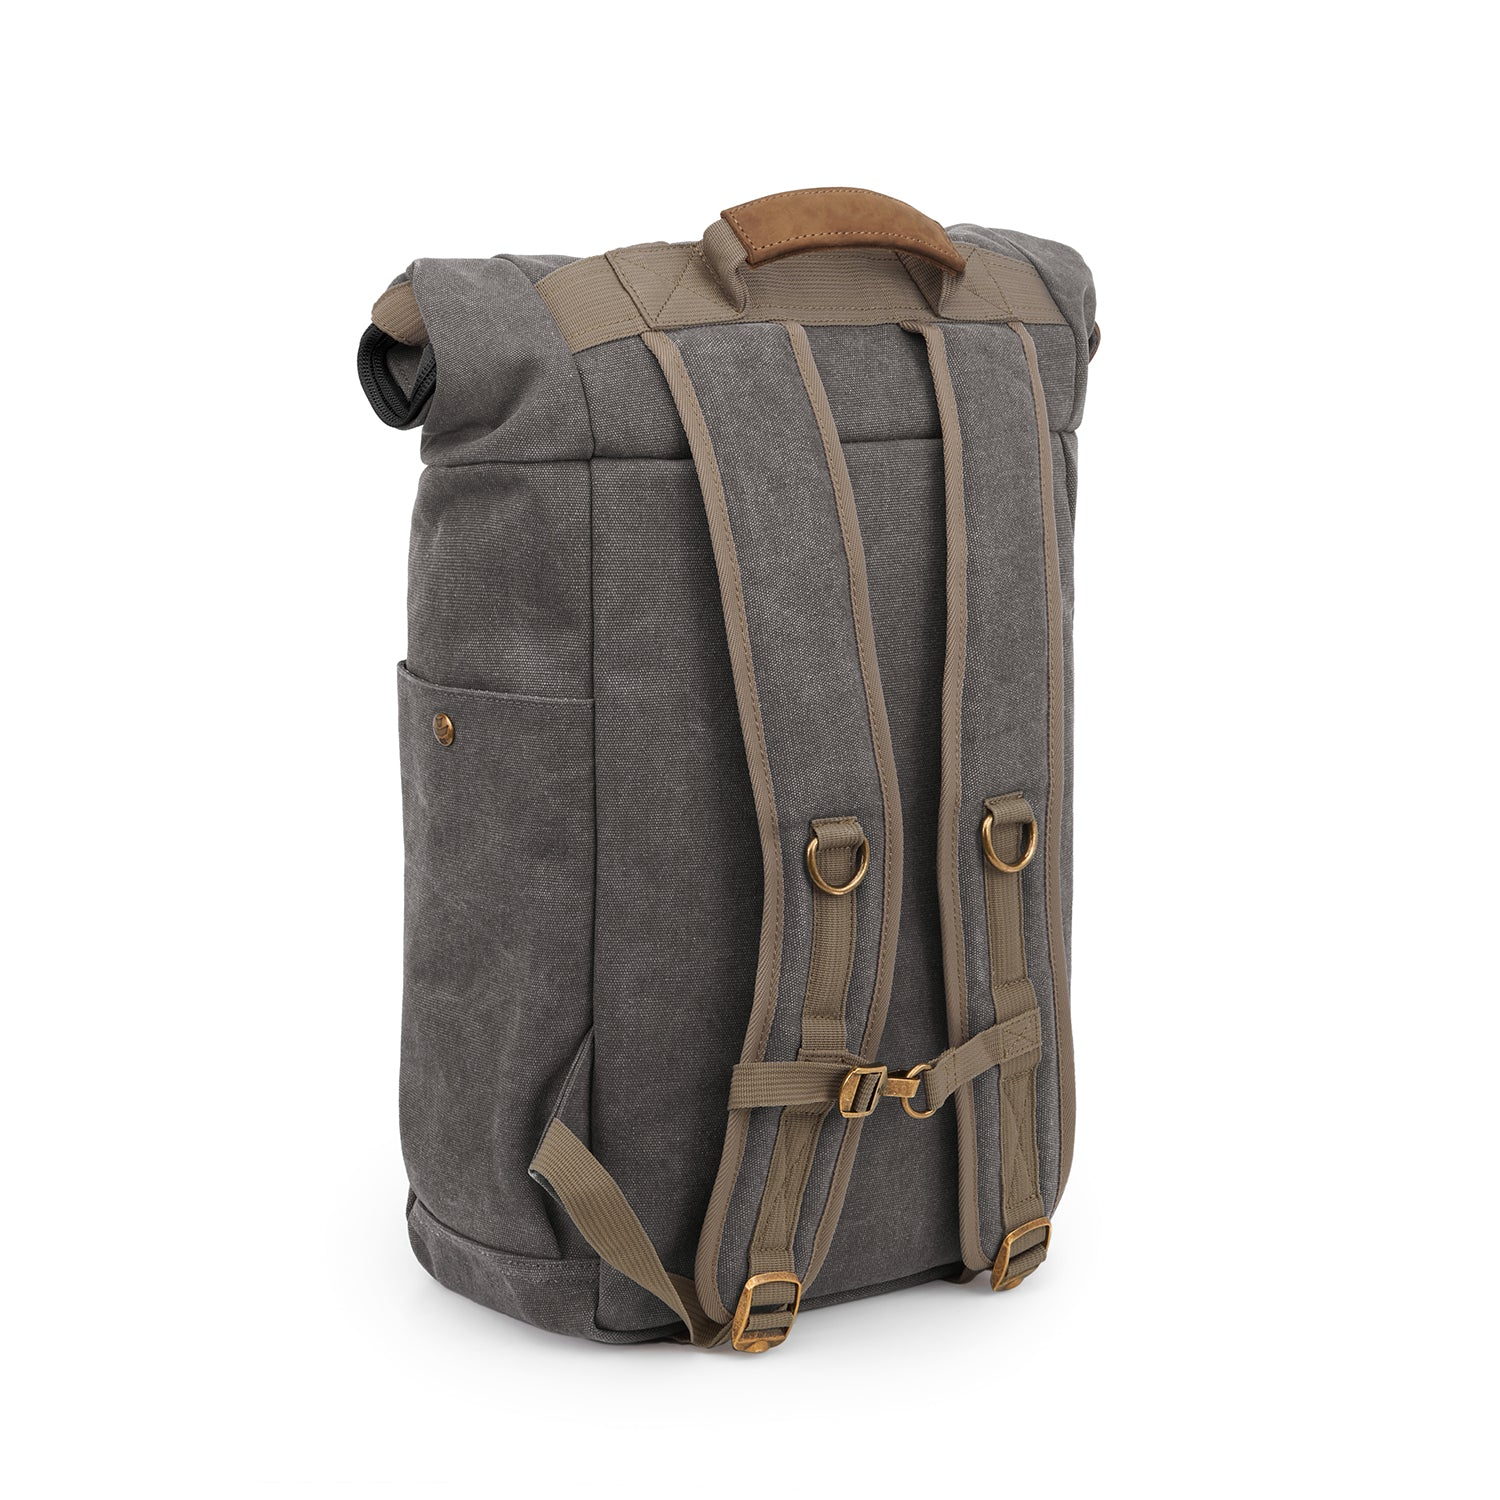 Ash Canvas Smell Proof Water Resistant Rolltop Backpack Bag